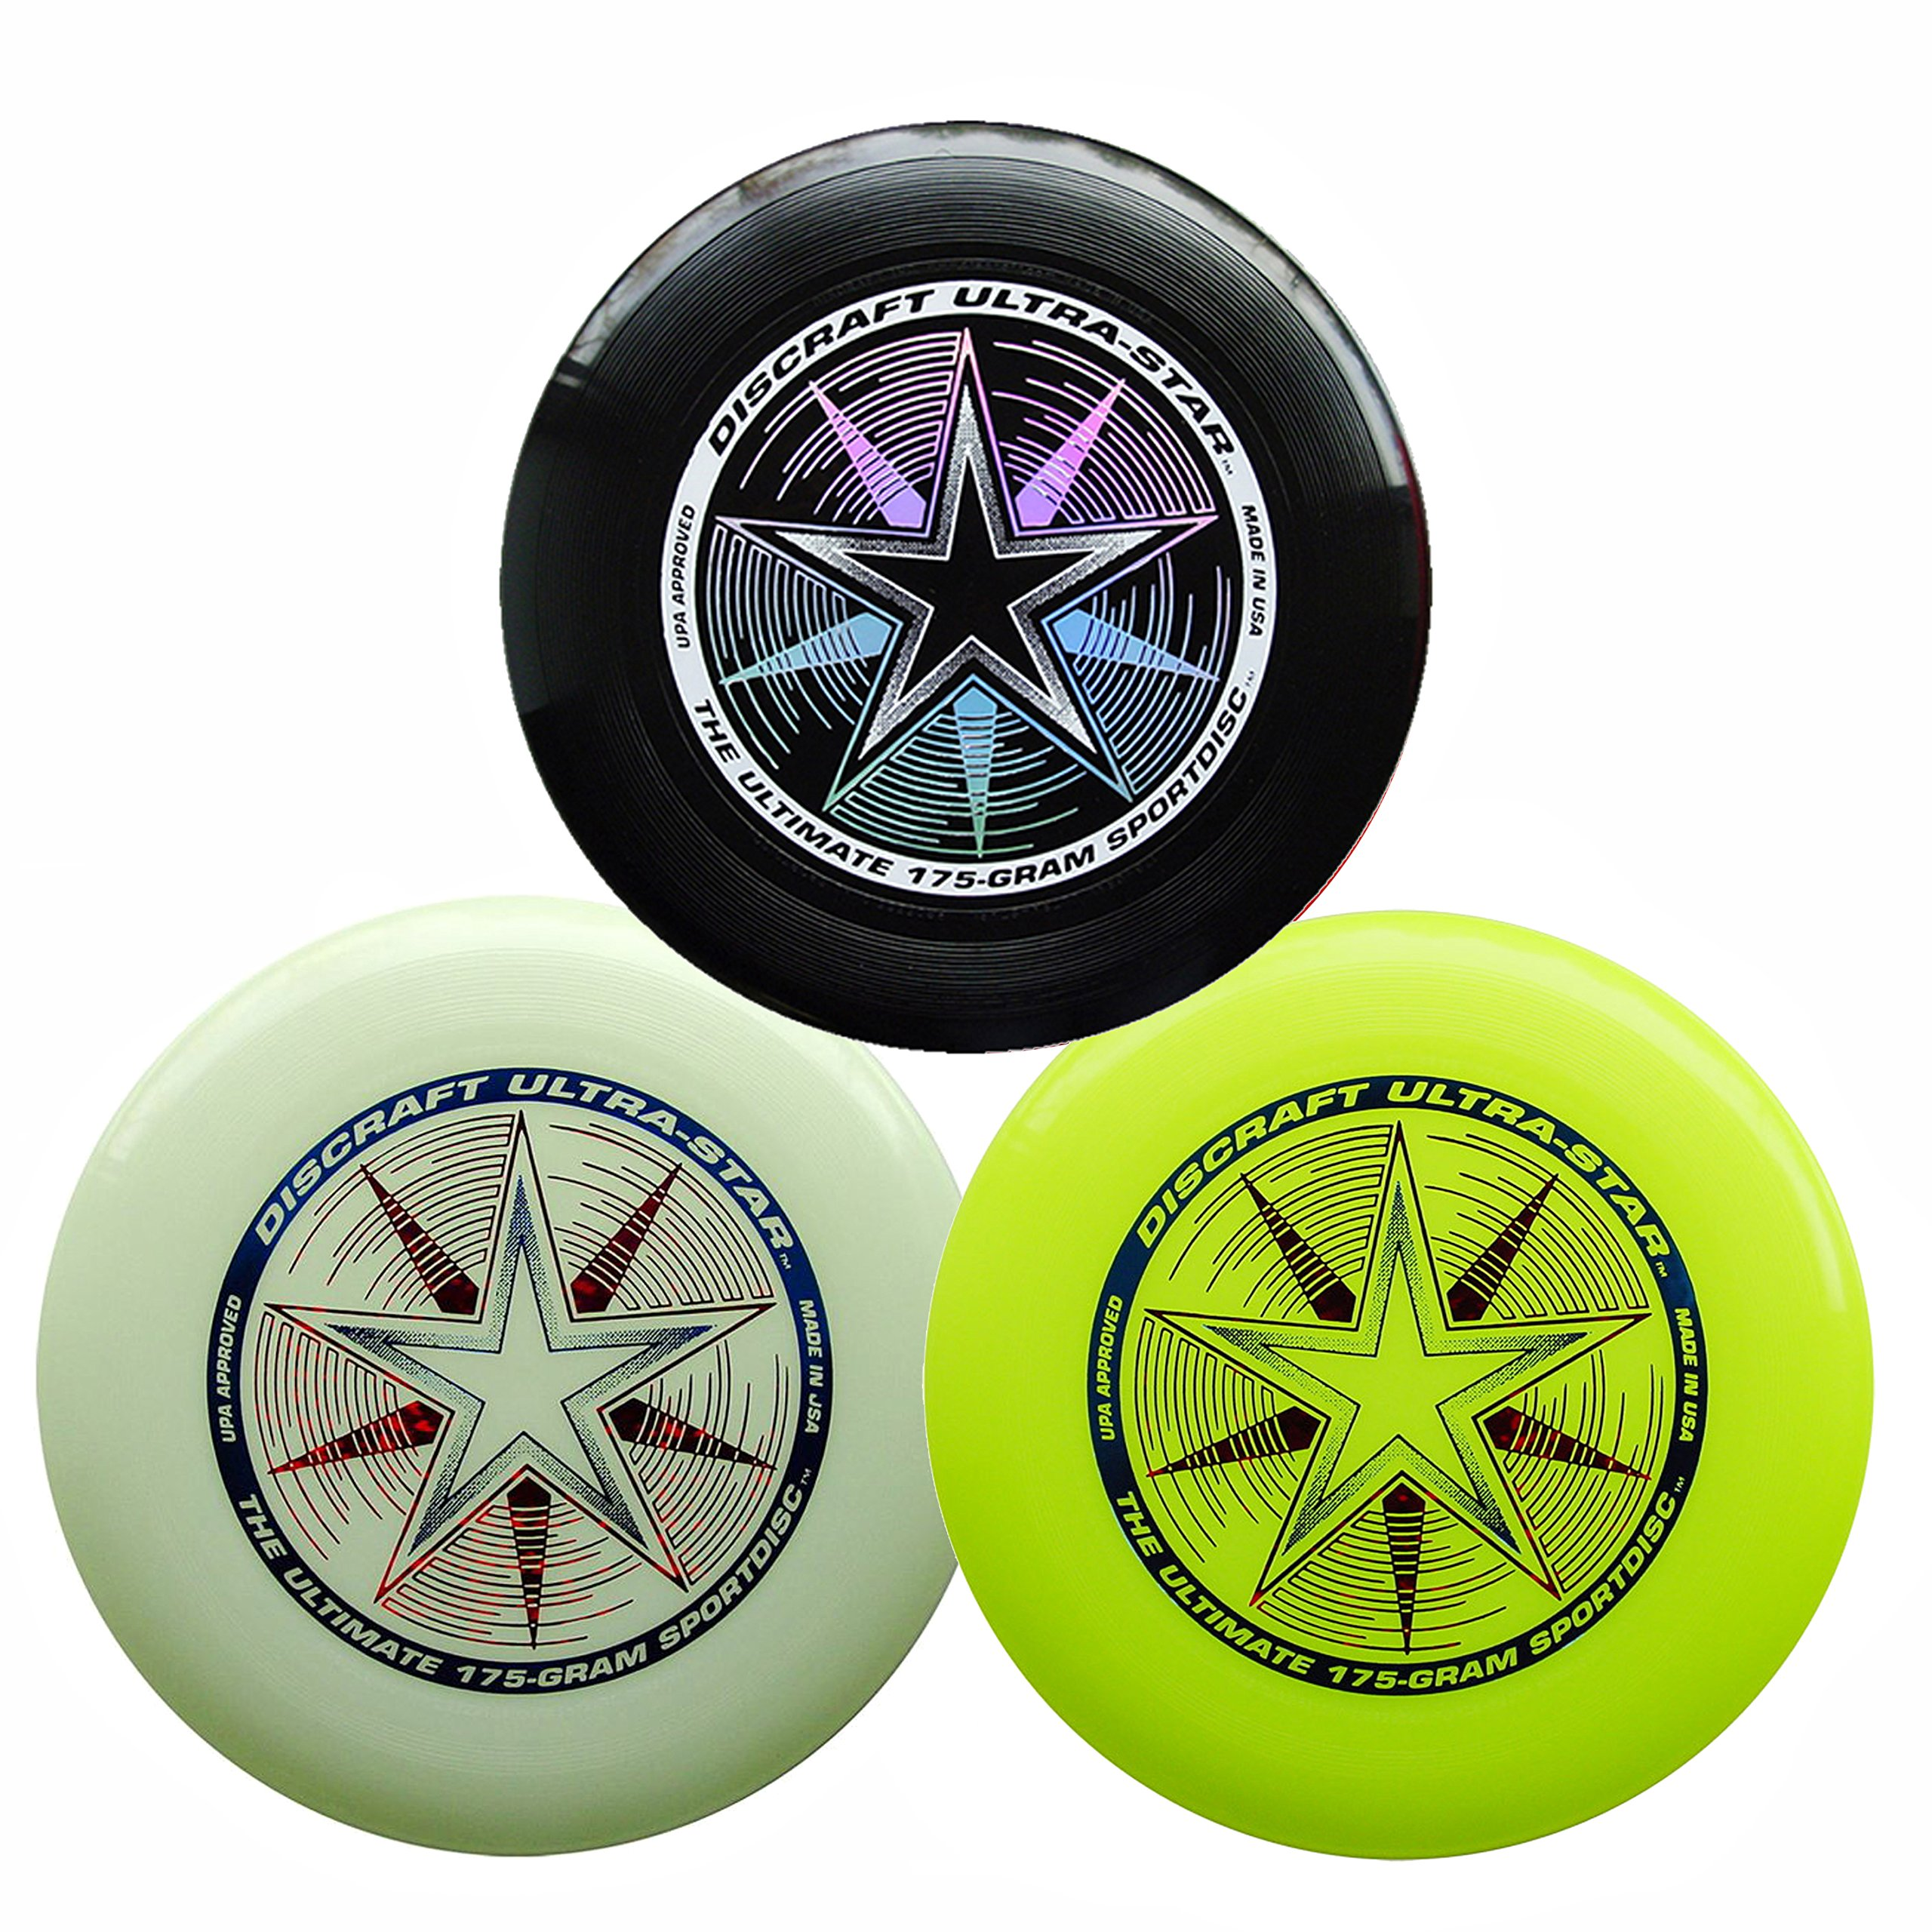 Discraft 175g Ultimate Disc Bundle (3 Discs) Black, Yellow & Glow by Discraft (Image #1)